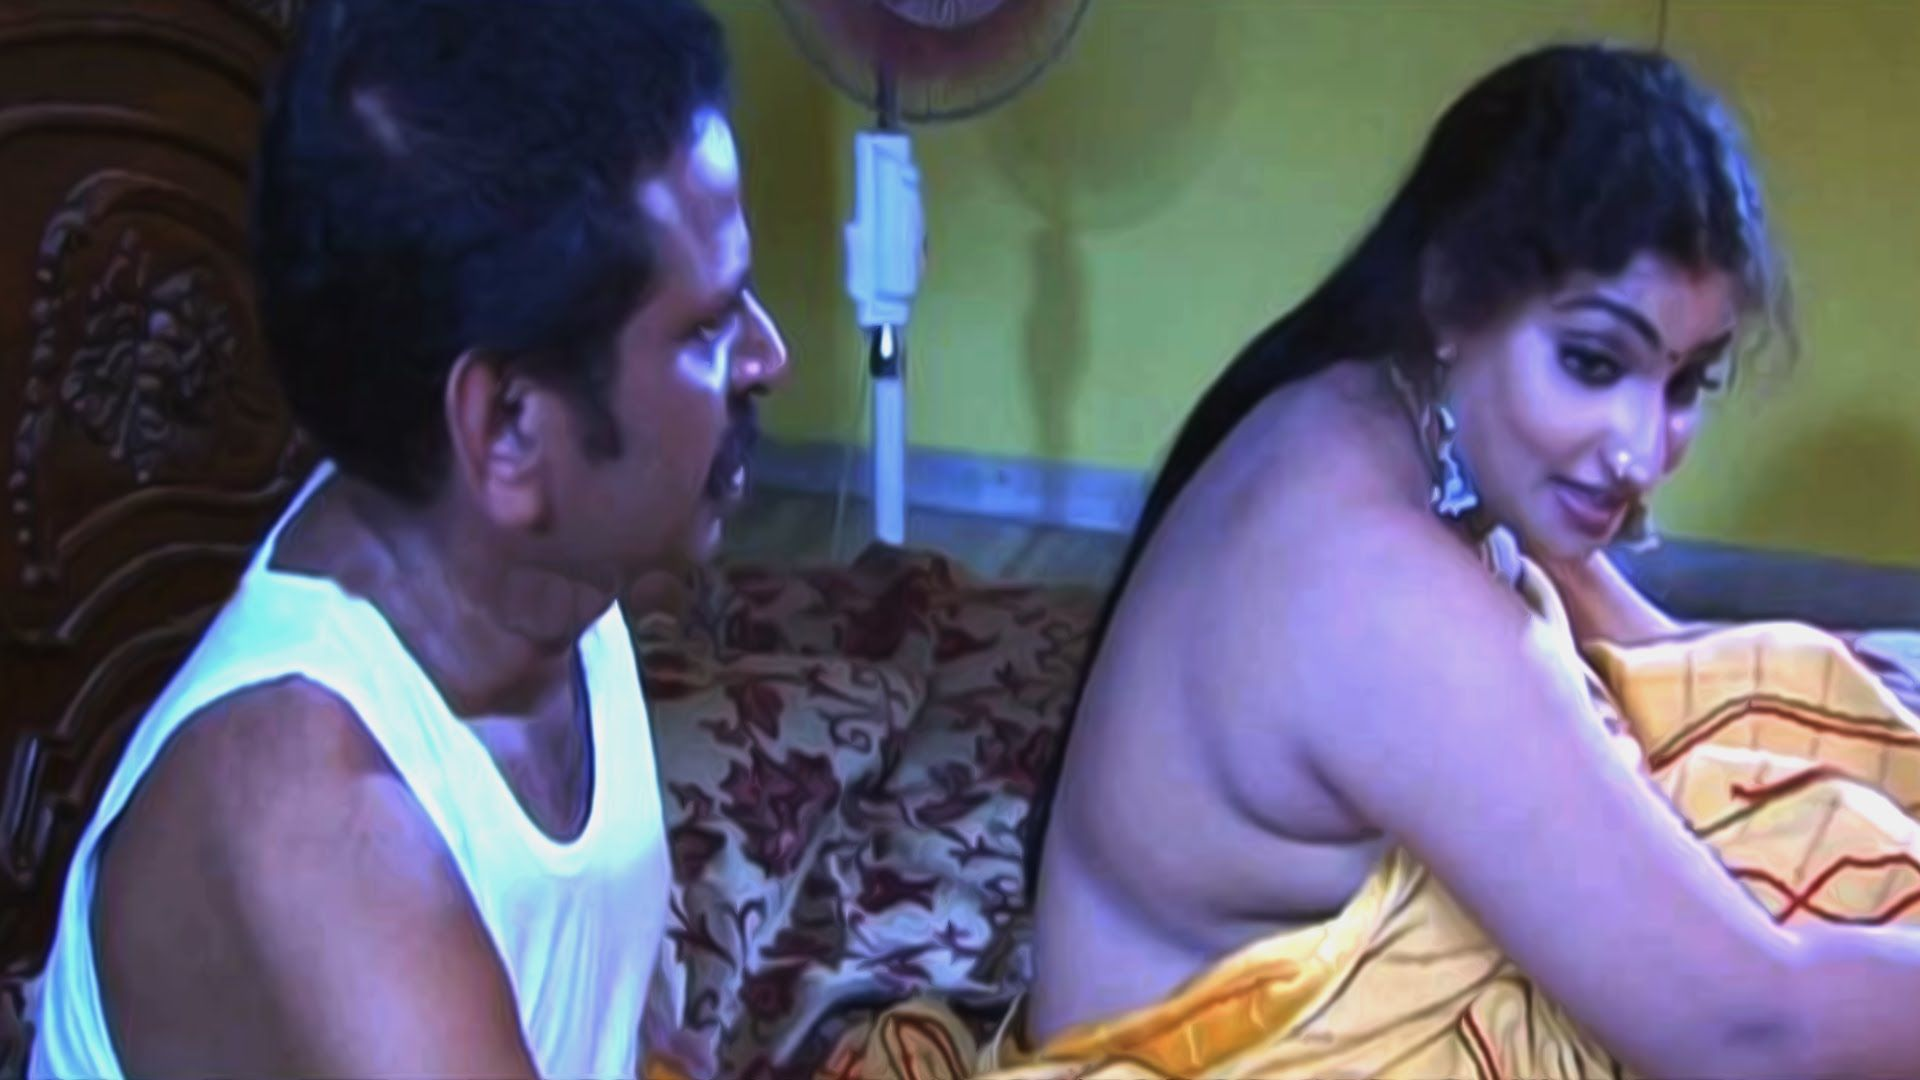 Seneste Hot Romantisk Tamil Film Tamil Hot Girl 18-2844